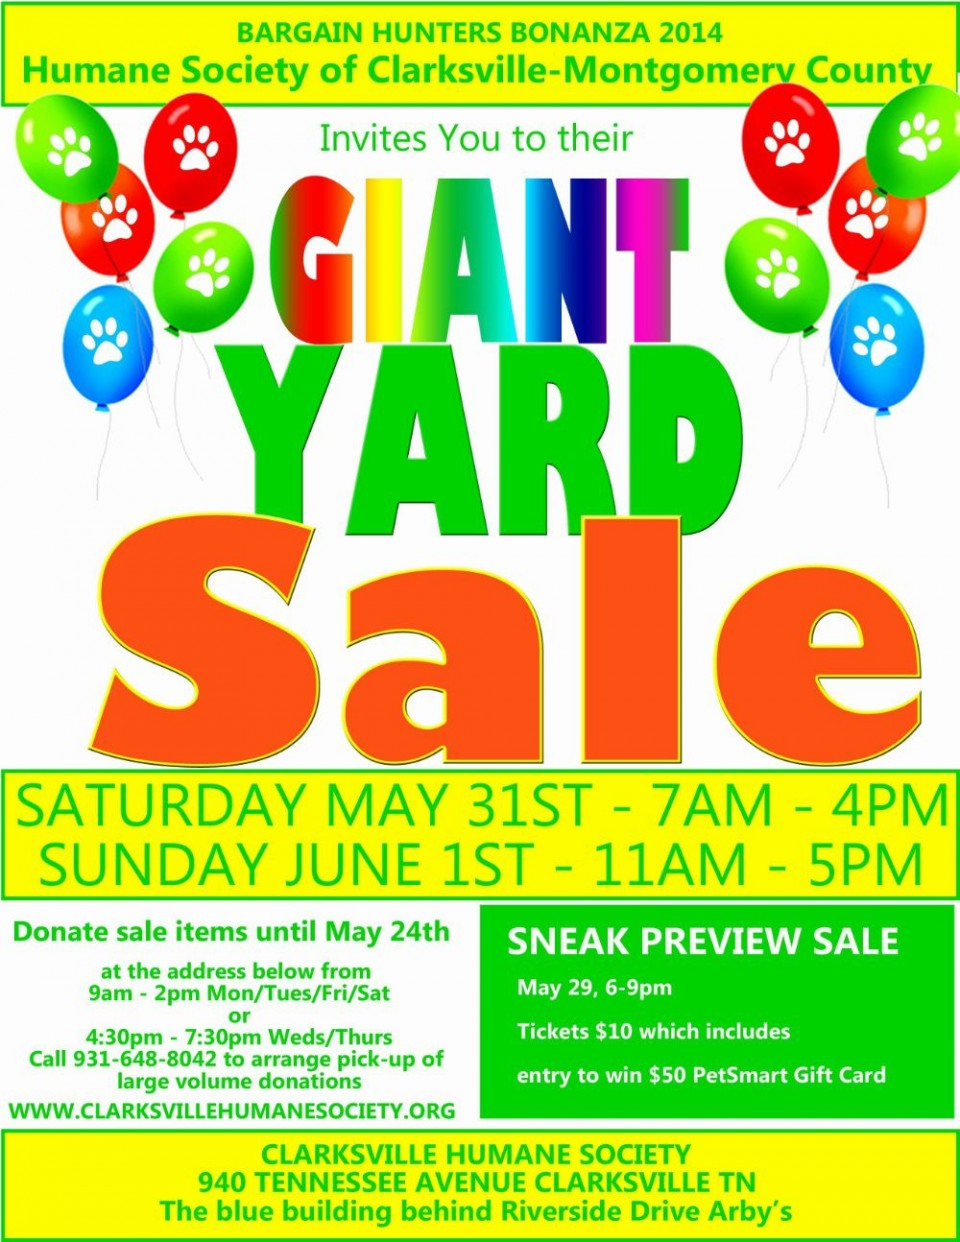 003 Sensational Yard Sale Flyer Template Example  Free Garage Microsoft Word960